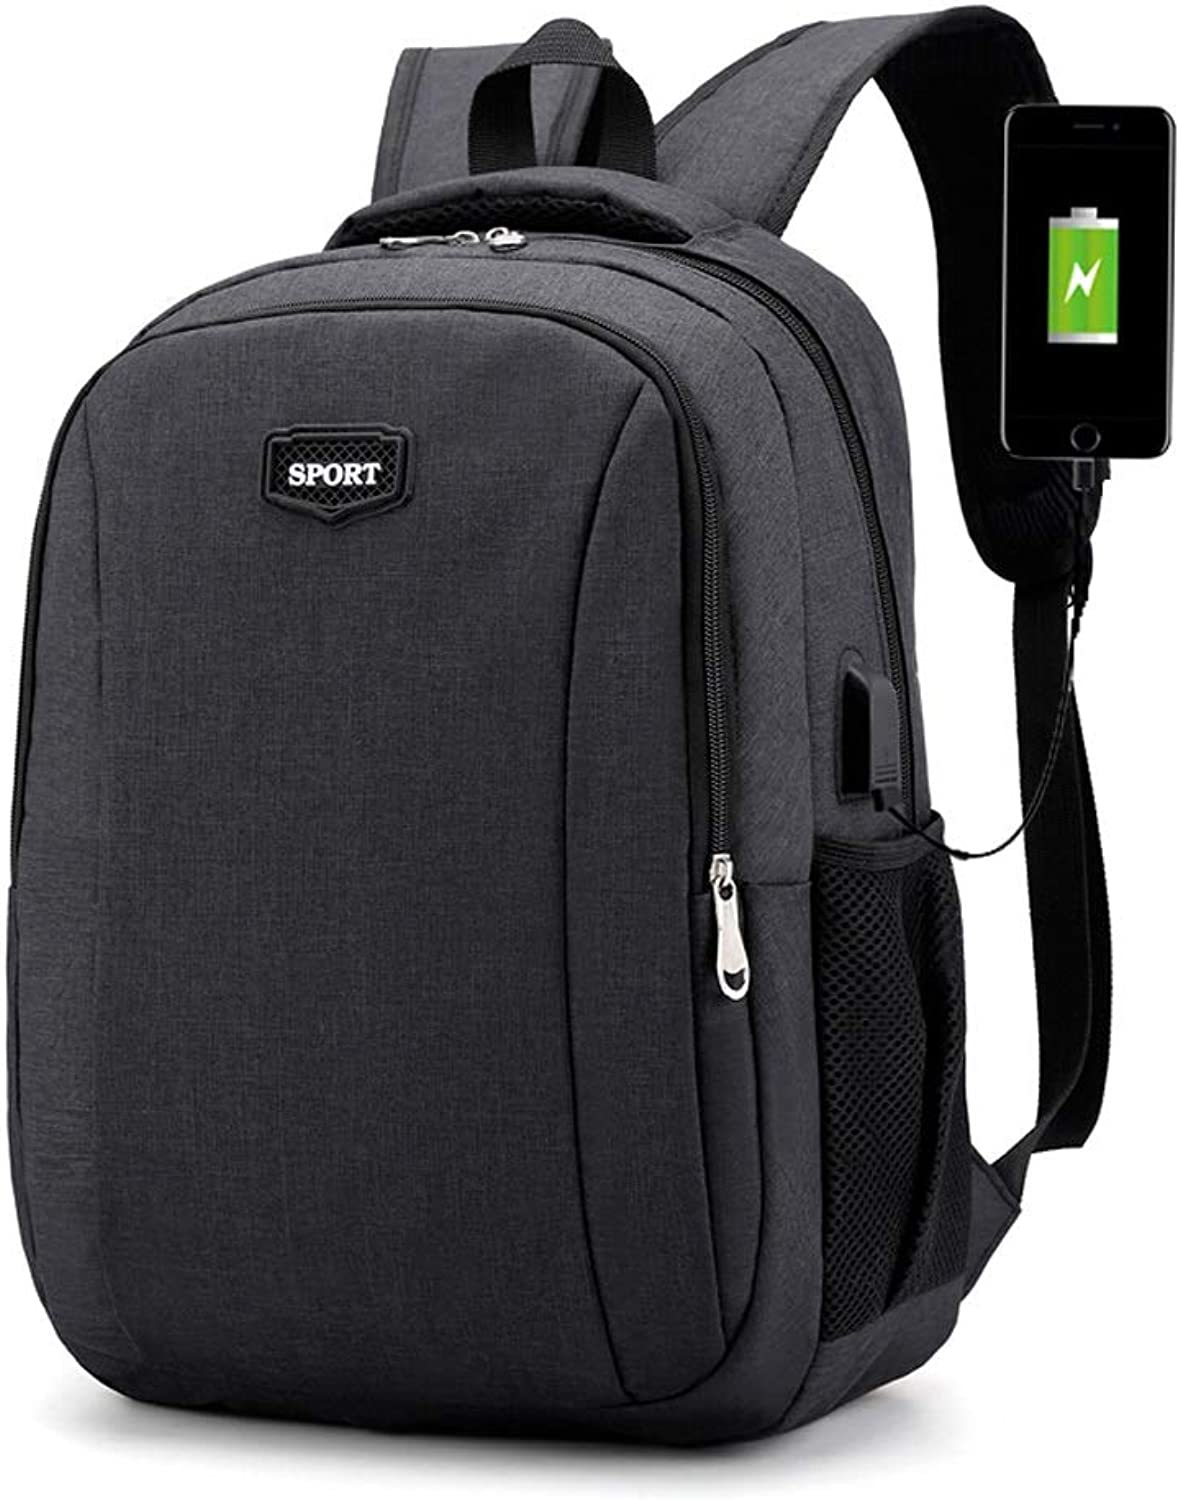 Multi-Function Laptop Bag Water-Repellent Backpack with USB Charging Interface Knapsack, Outdoor Travel Rucksack, Men's and Women's College Student Daypacks (color   Black, Size   29cm17cm44cm)